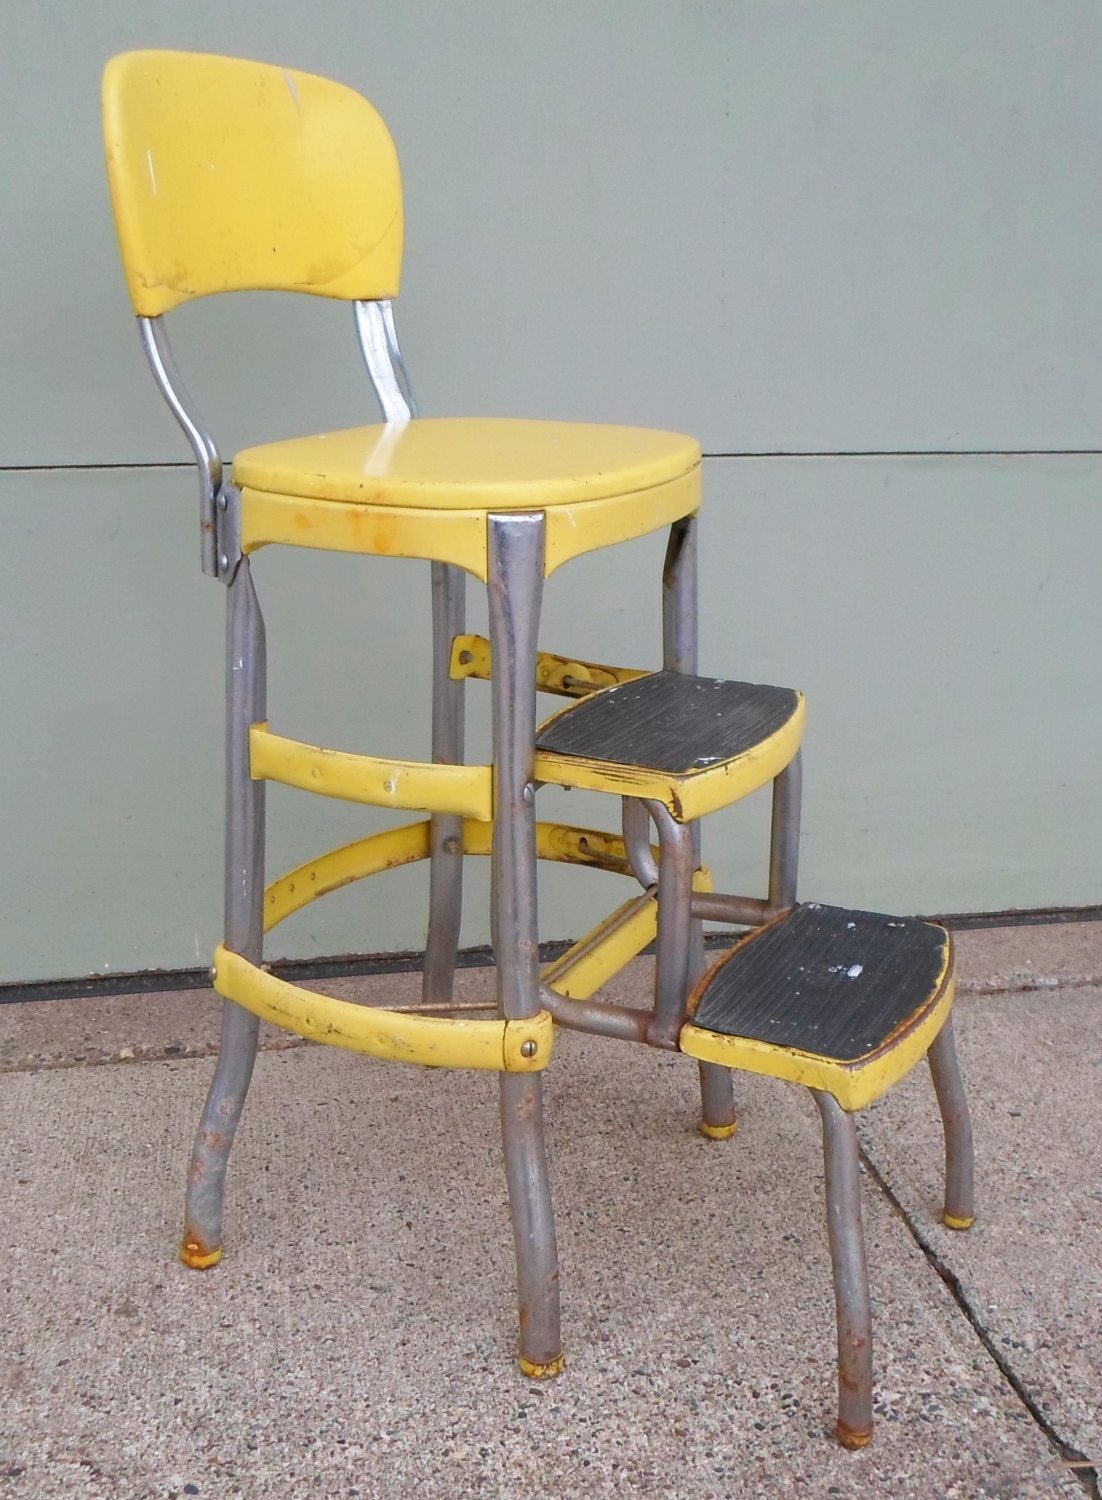 Superbe Vintage Cosco Chair Step Stool Yellow Mid By Alsredesignvintage, $79.00